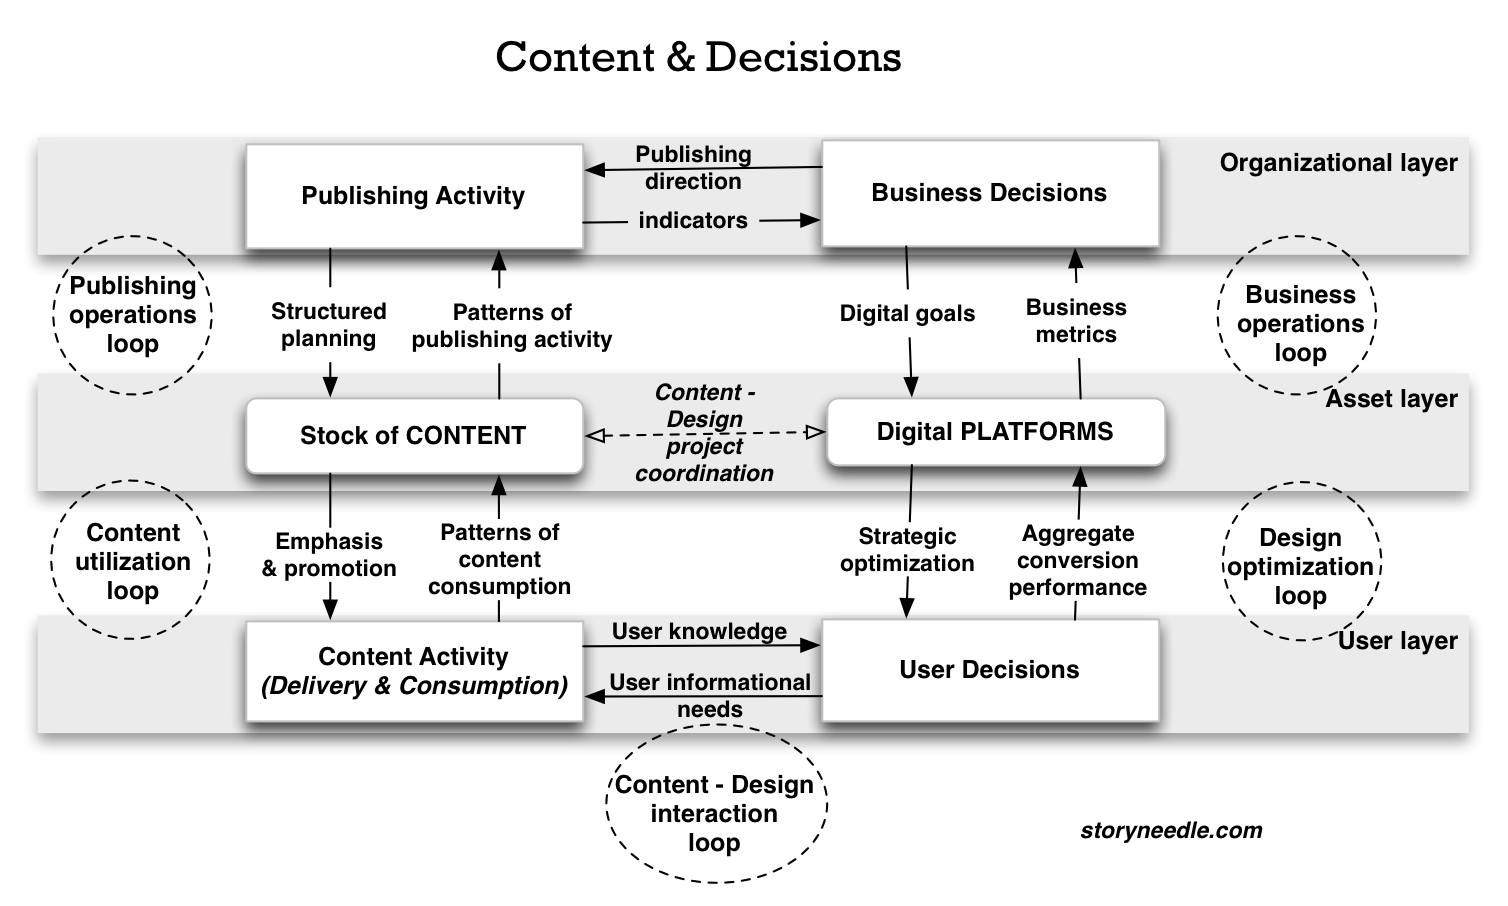 Michael Andrews: Diagram showing relationships between organizations, their digital assets, and users/customers, and the interaction between content and platforms.